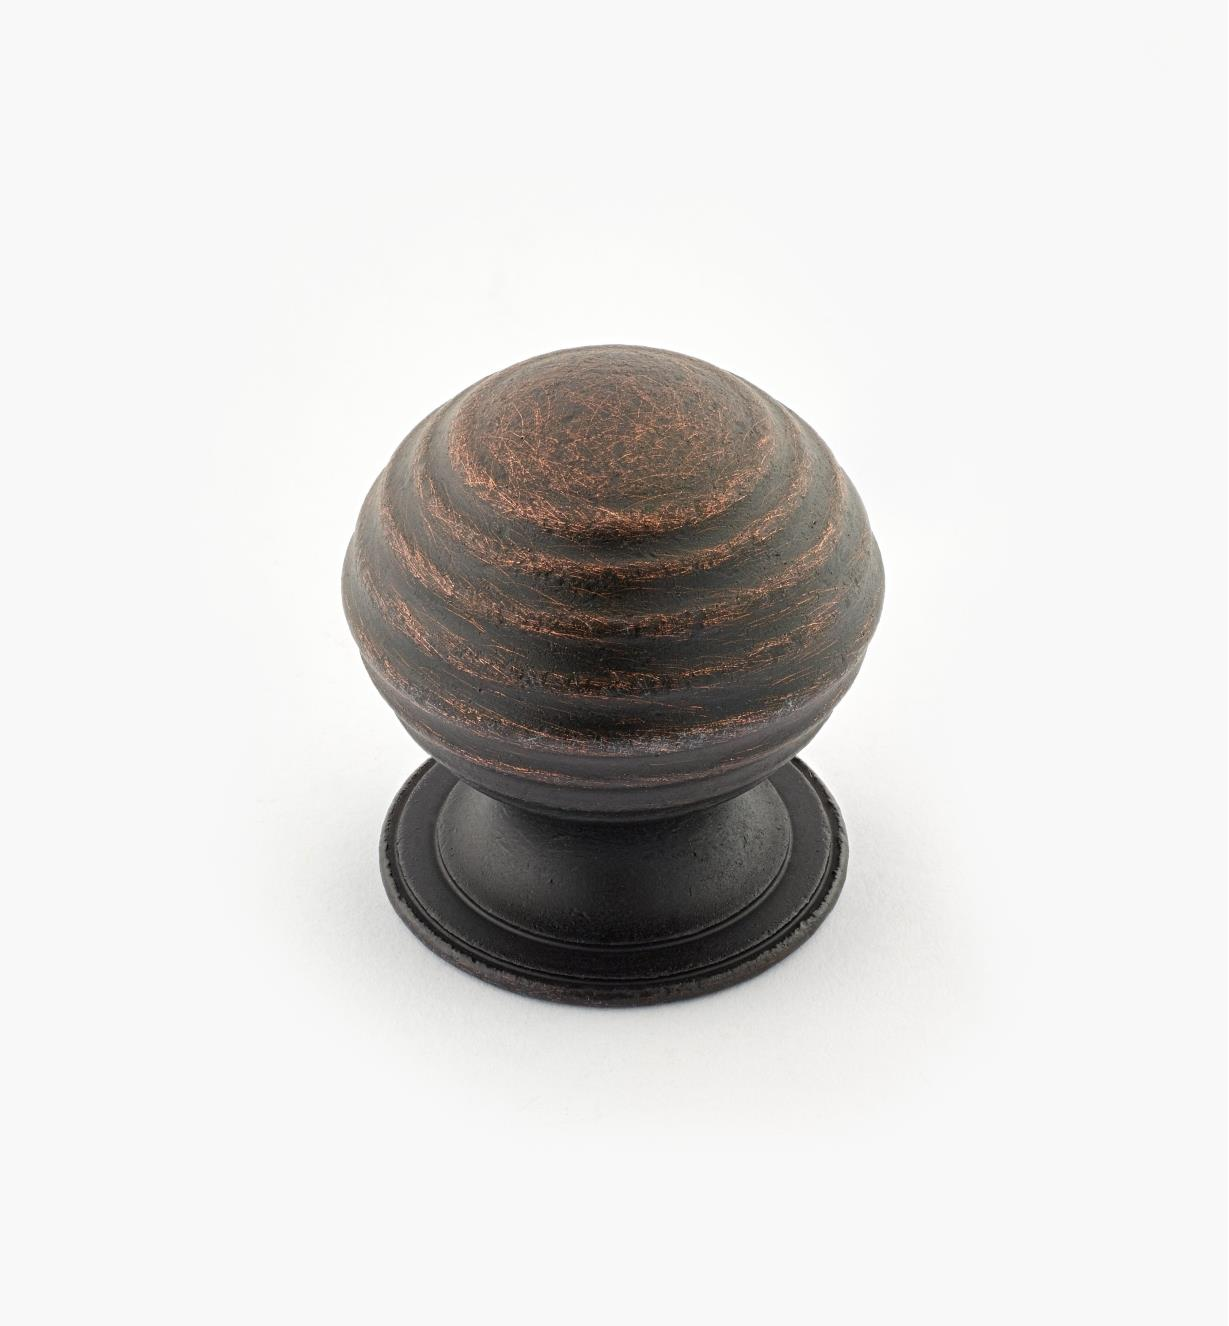 "02W3275 - Weathered Bronze Suite - 1 1/4"" x 1 1/4"" Turned Brass Ridged Knob"